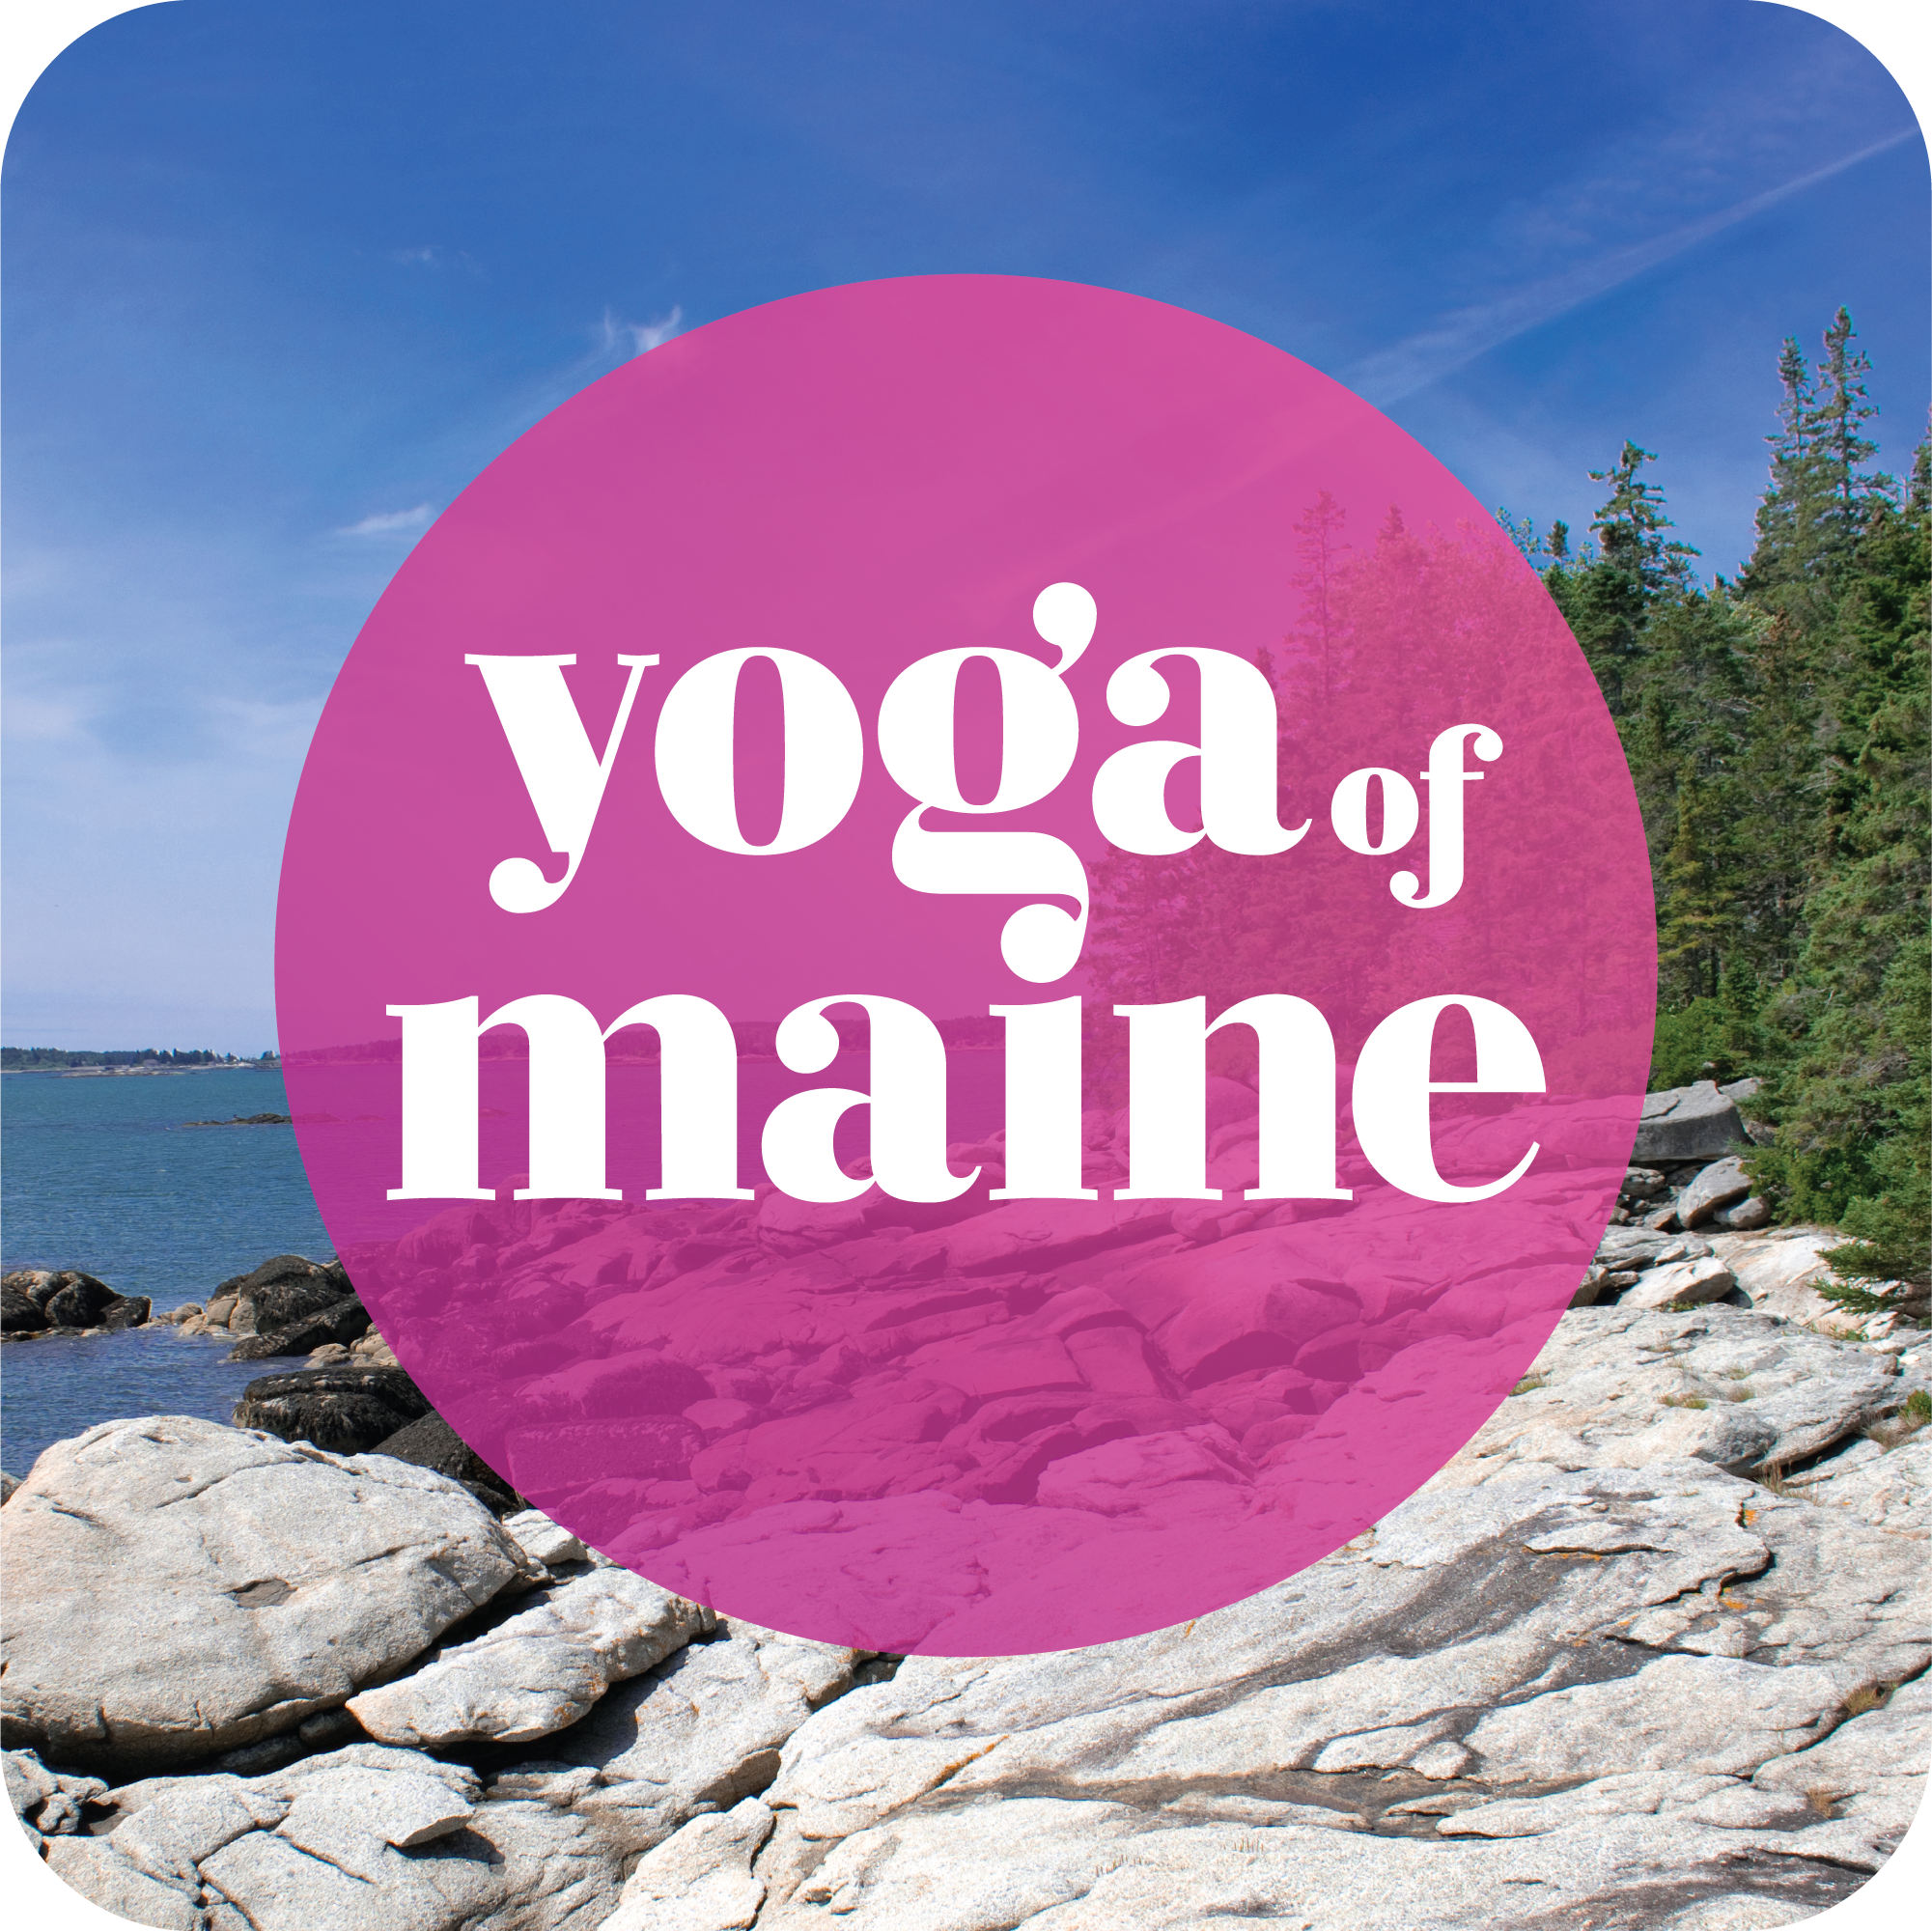 """- Yoga is meaningful to us in many ways, and others' stories can help us better understand our own paths. This podcast connects you to the brightest yogic thinkers and deepest practitioners in Maine. The state has become a hotspot for yoga with inspiring teachers, organizations and businesses contributing to the growing community. Of course, you do not need to live in Maine or even been to """"Vacationland"""" to glean insights from the conversations on this podcast. This space is to exchange thoughts, share insights, receive bits of clarity, and spark curiosity. The internal world of yoga will be made visible here through dialogue, connecting us to each other."""